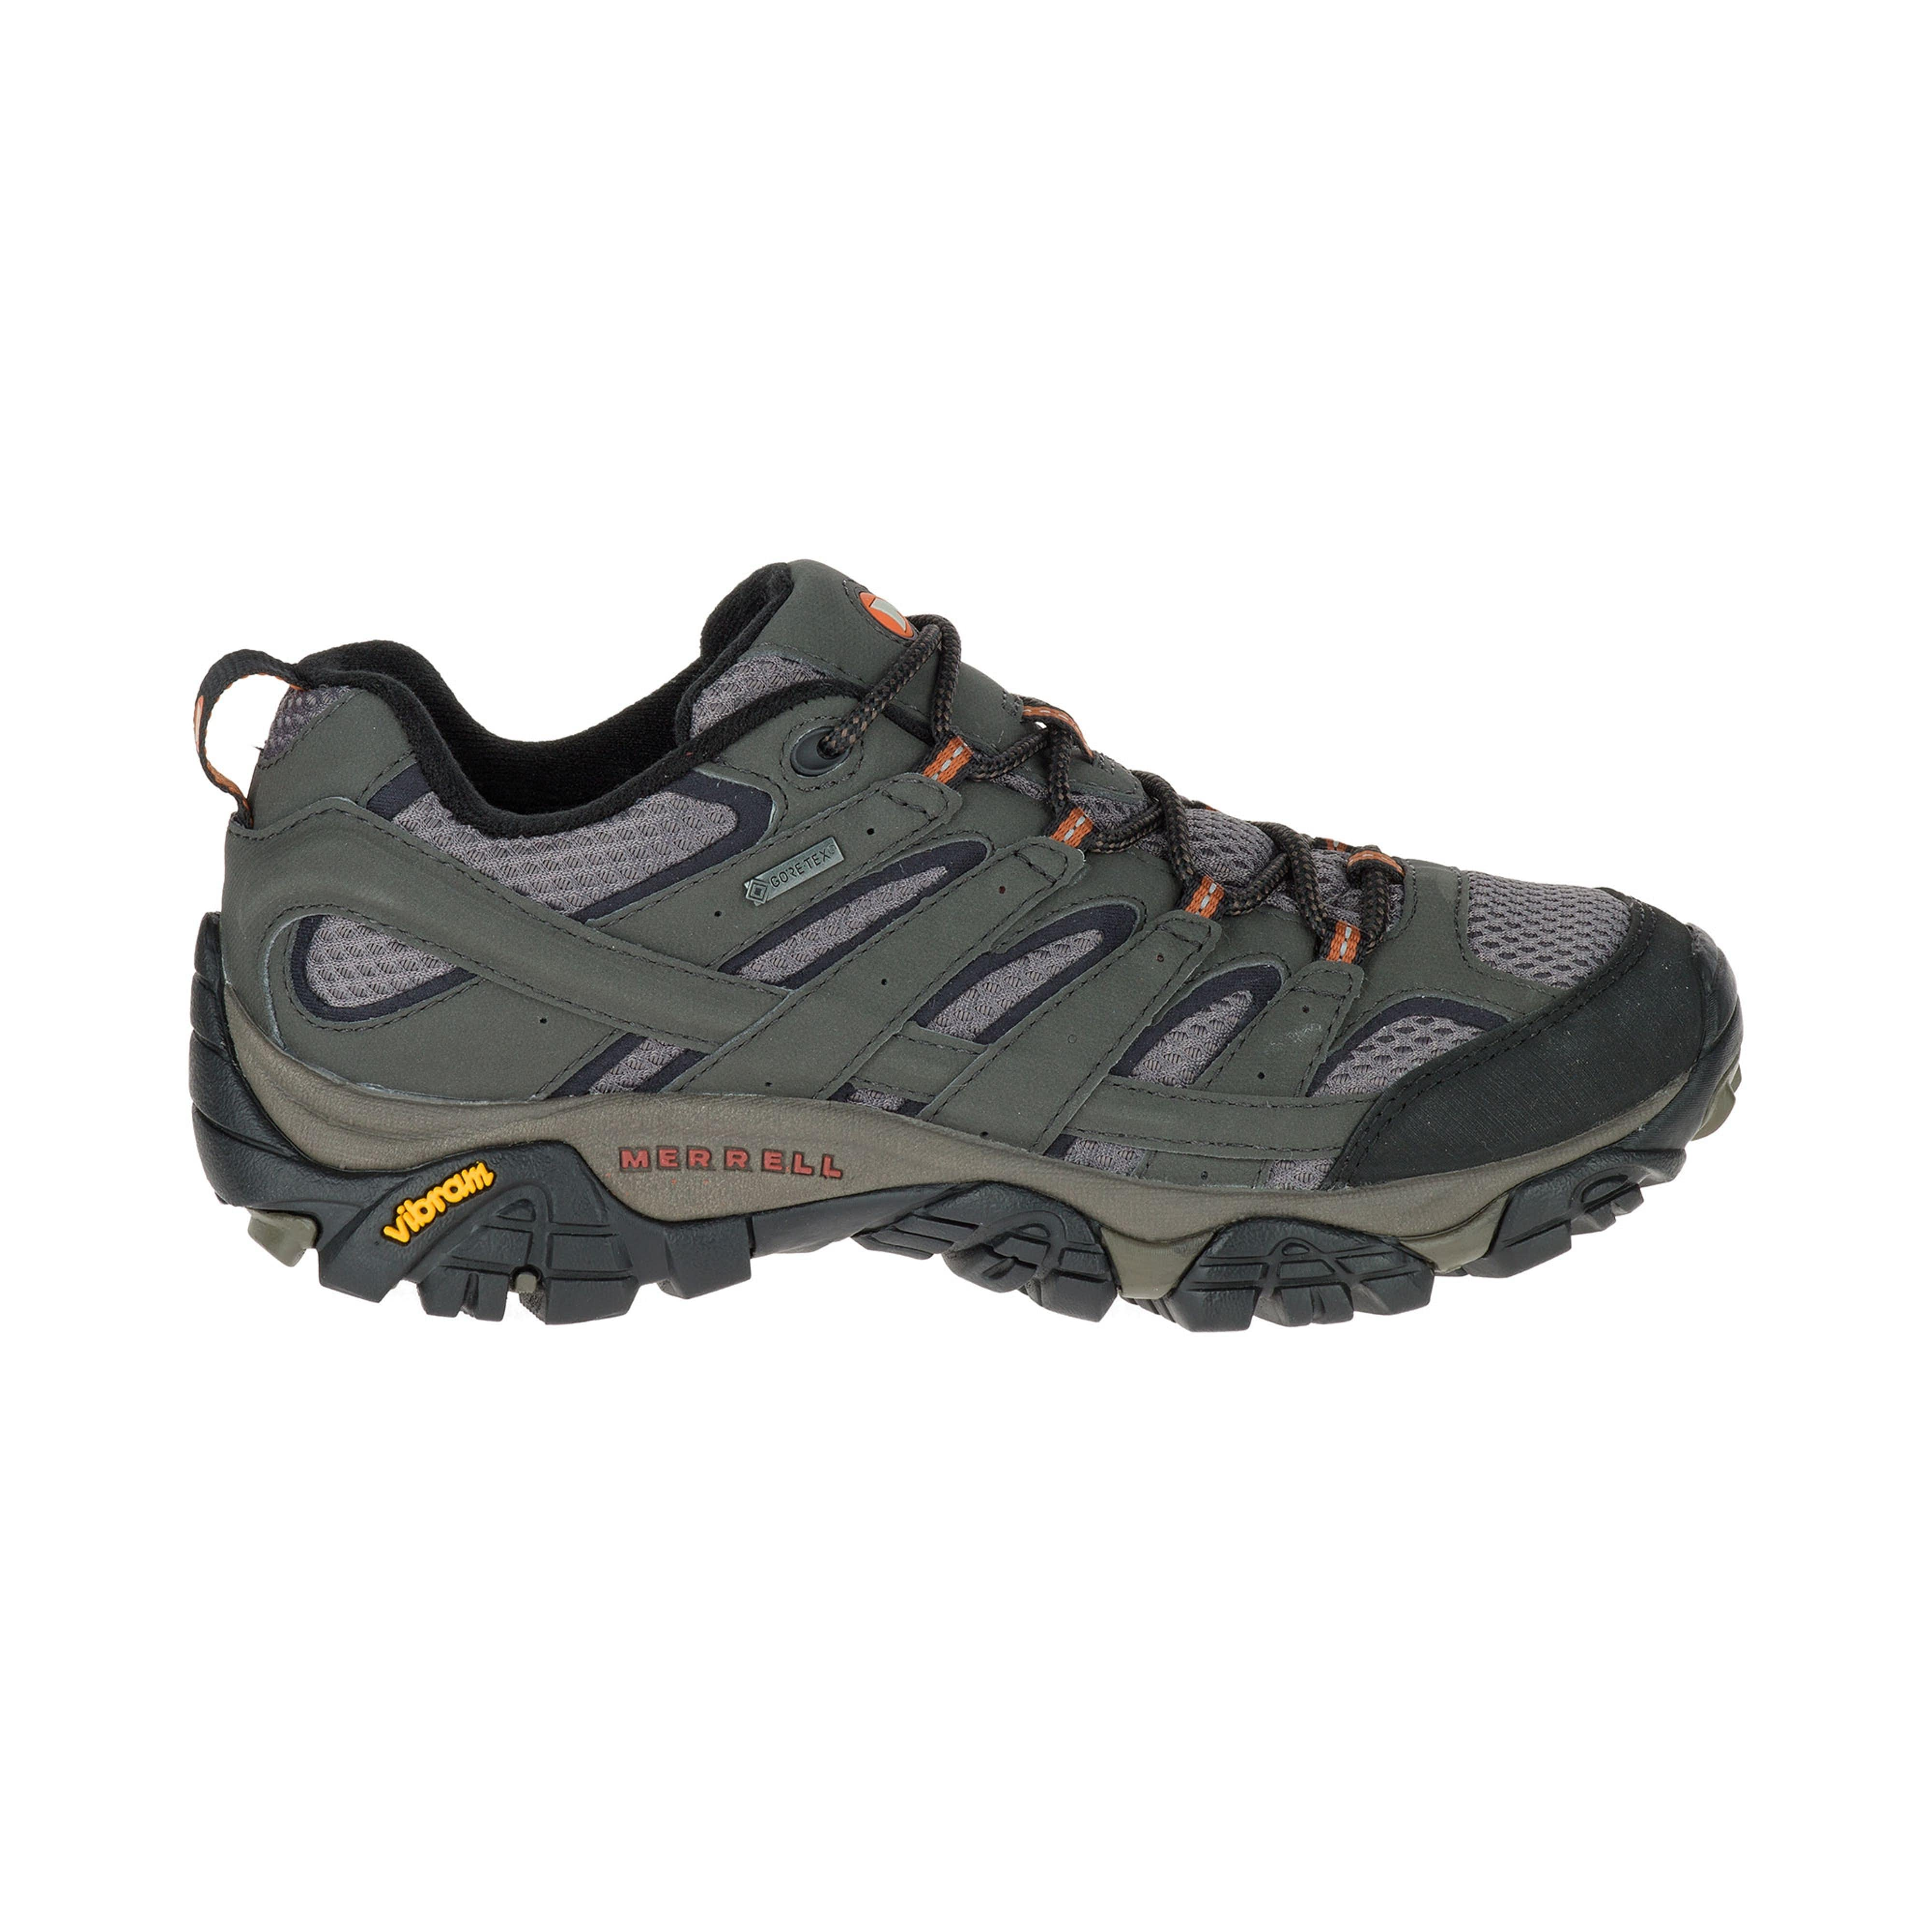 931bf9aebf70 Merrell Moab 2 Women s Gore-Tex Hiking Shoes